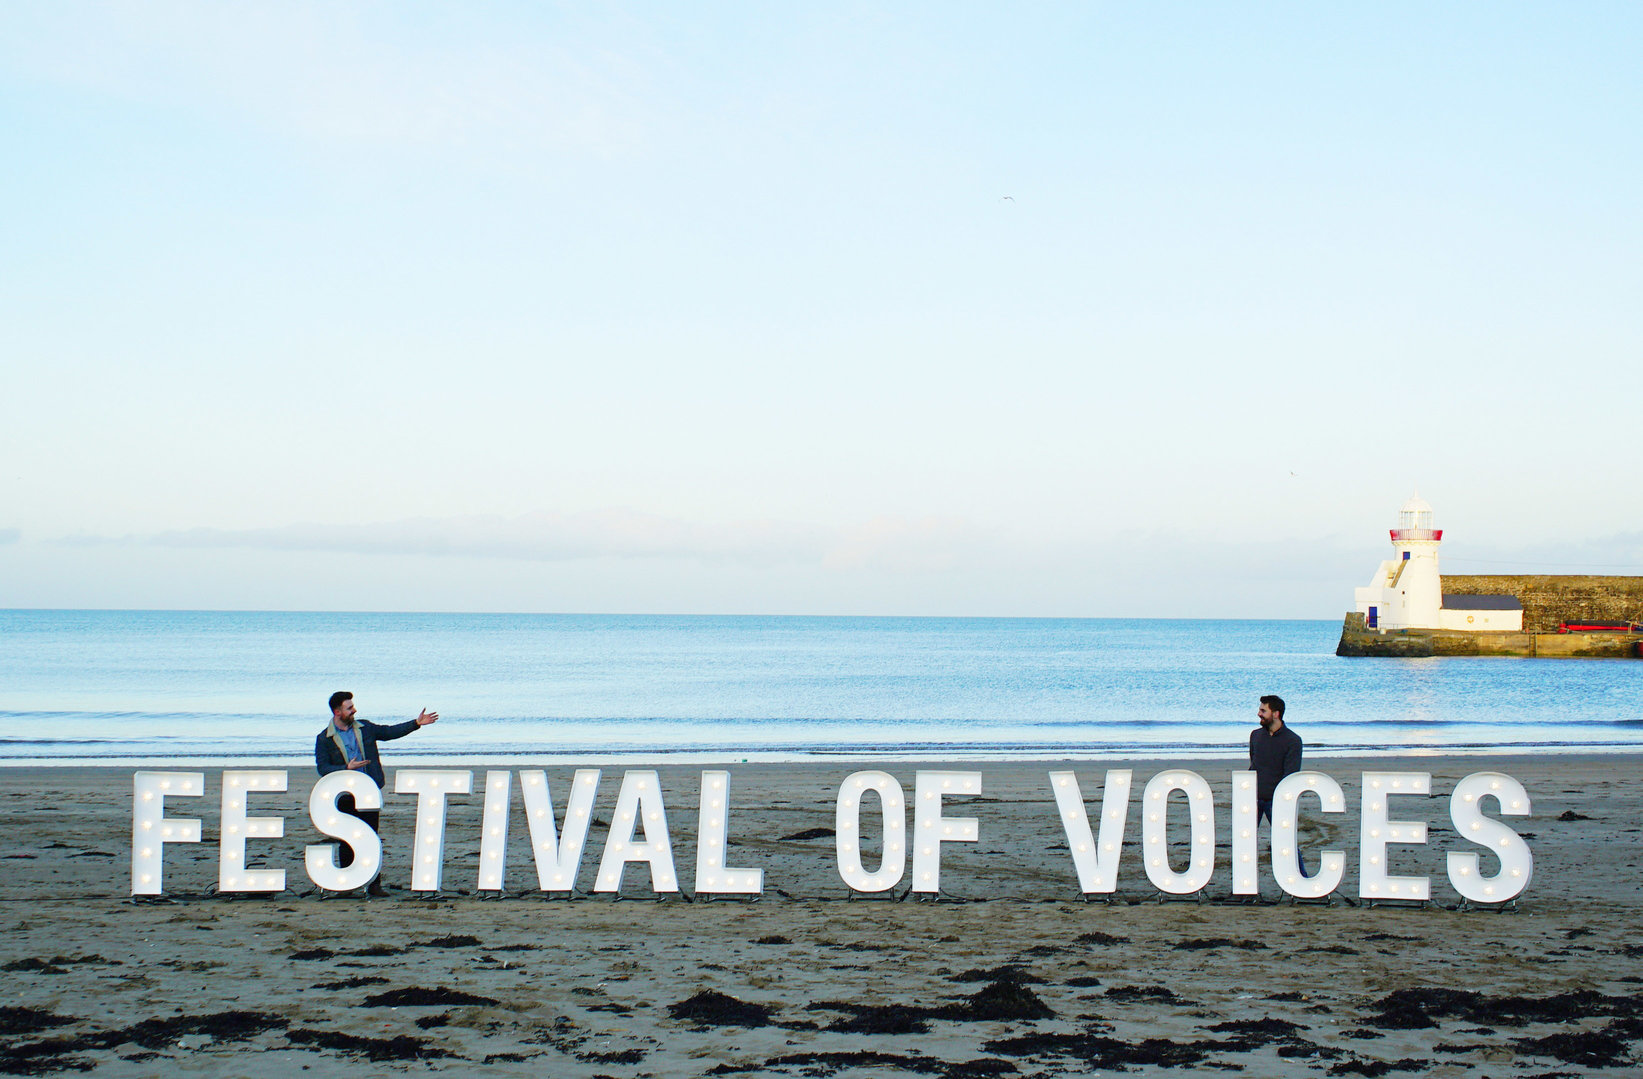 rsz fingal festival of voices 2